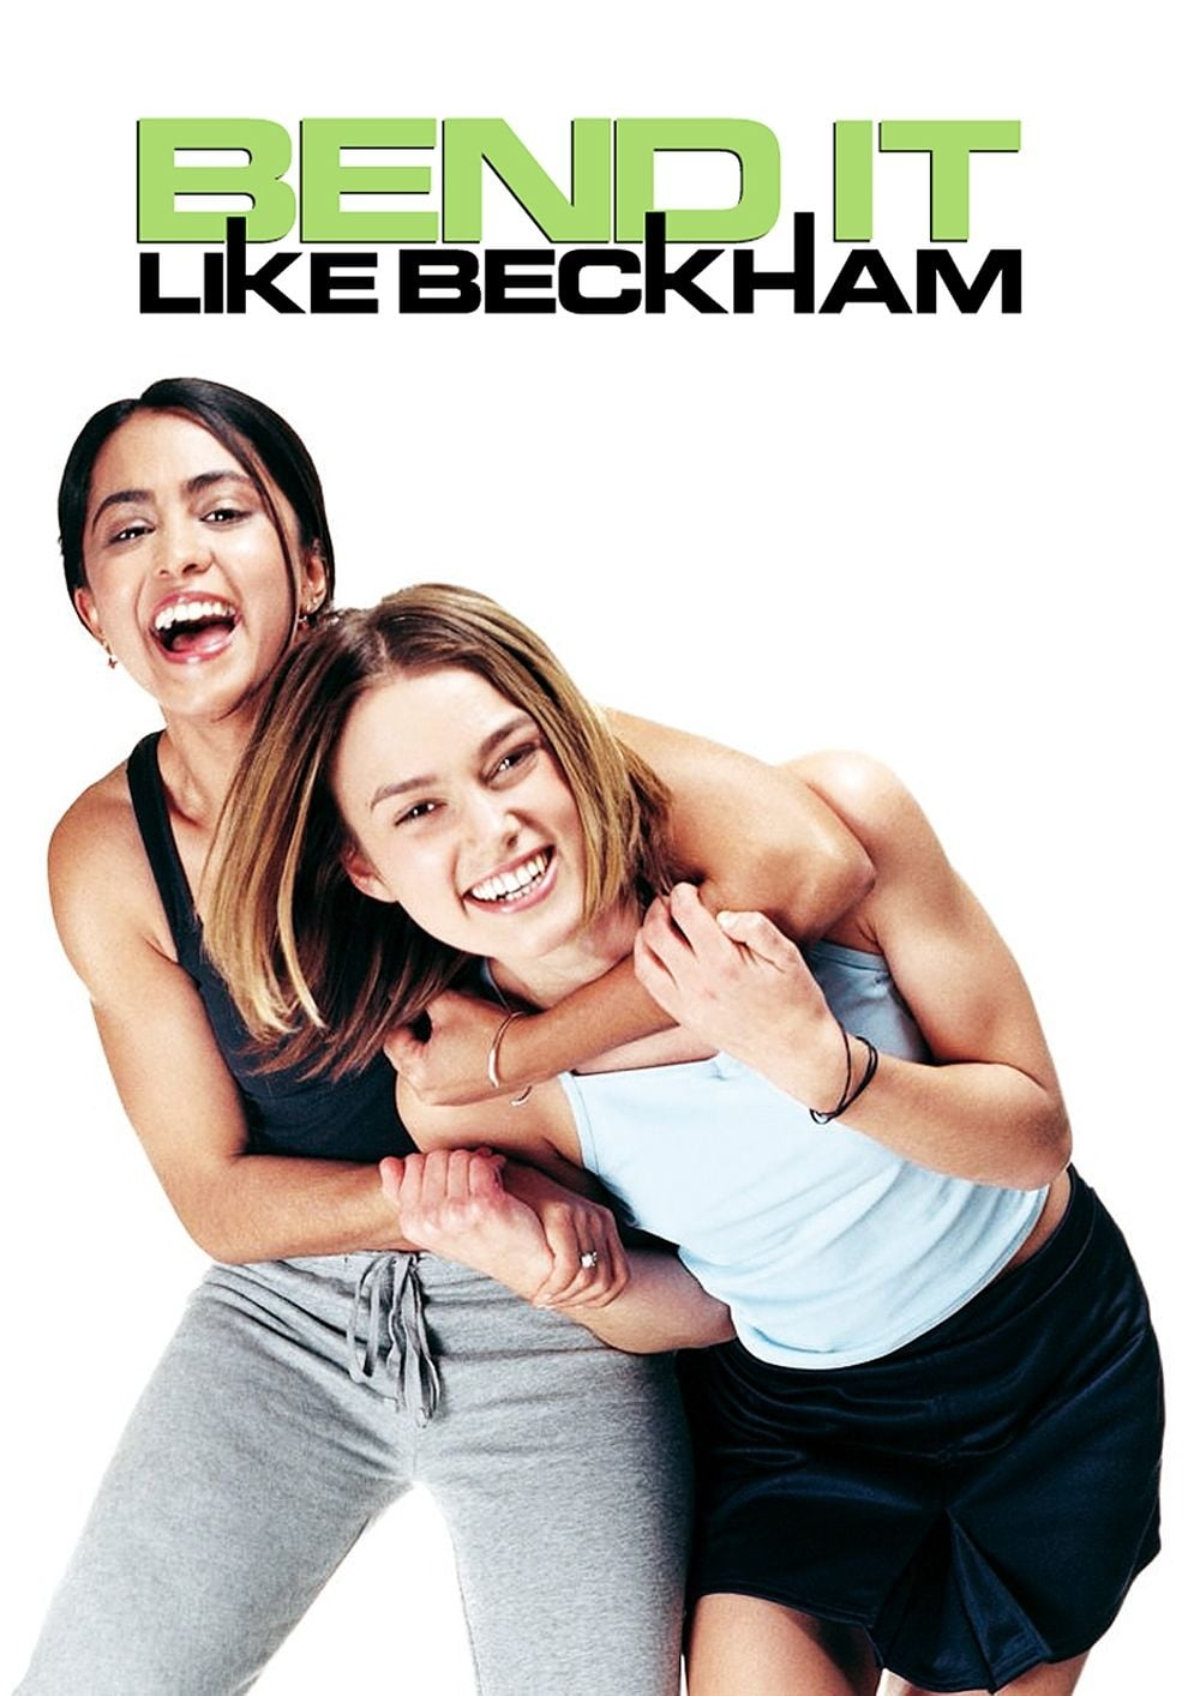 'Bend It Like Beckham' movie poster